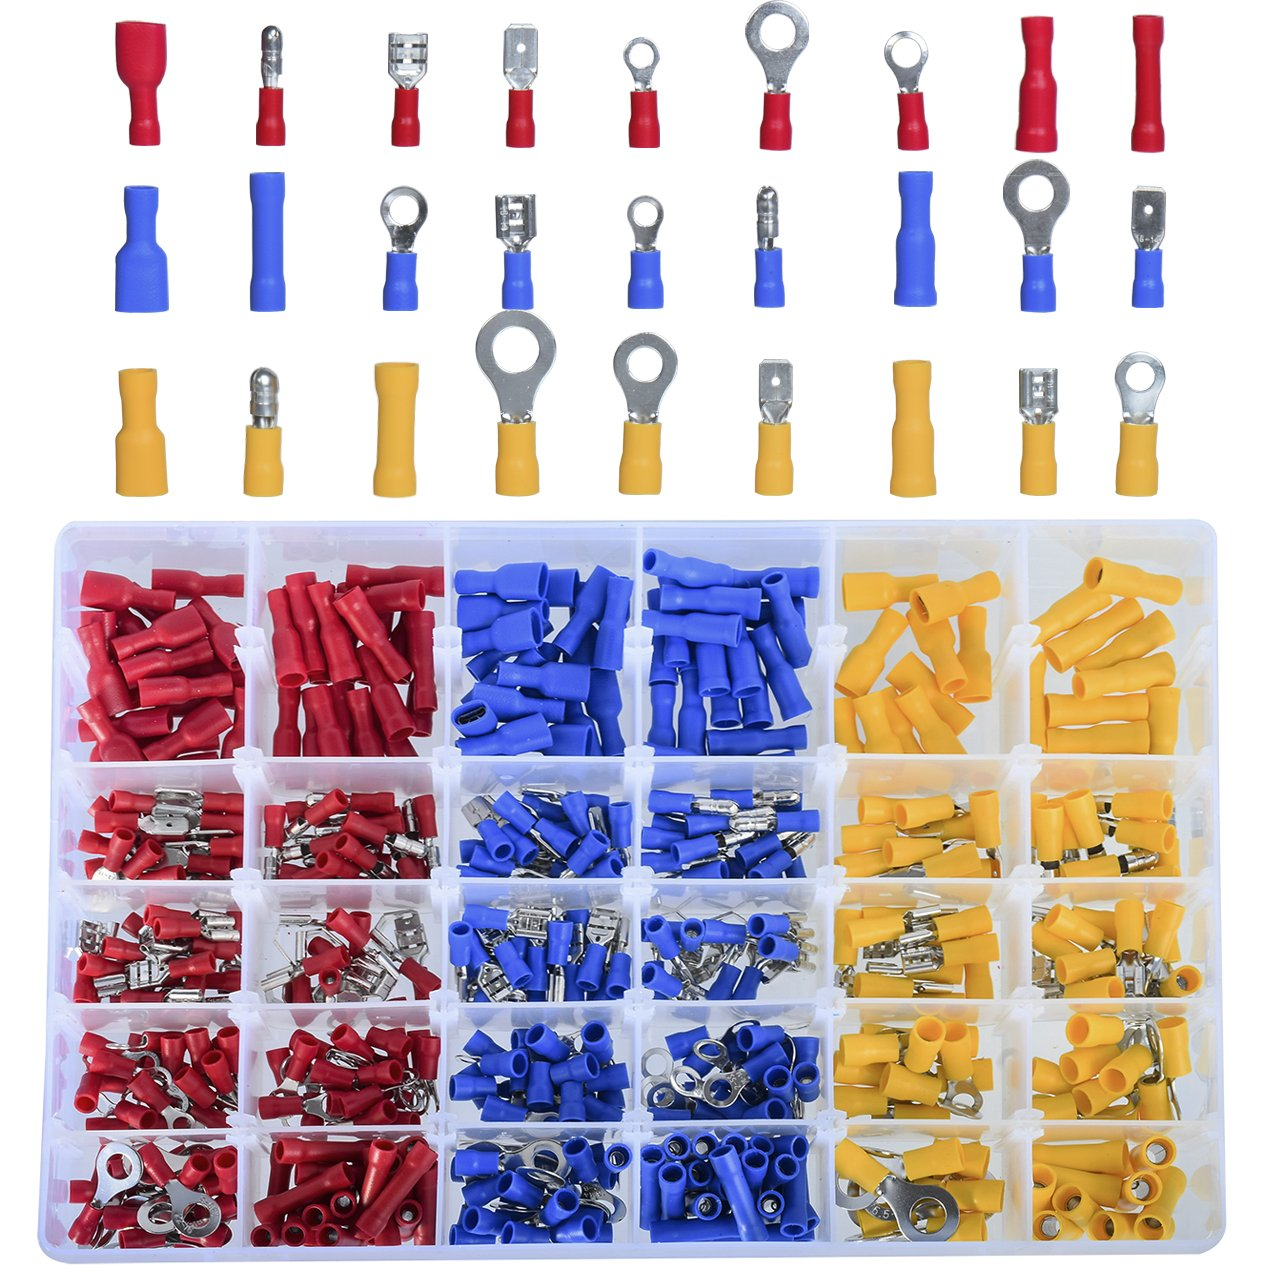 Spade Terminals Furnace Wiring Gauge Dedc 480pcs Insulated Wire Connectors Assortment Electrical Crimp Kit Cable Terminal